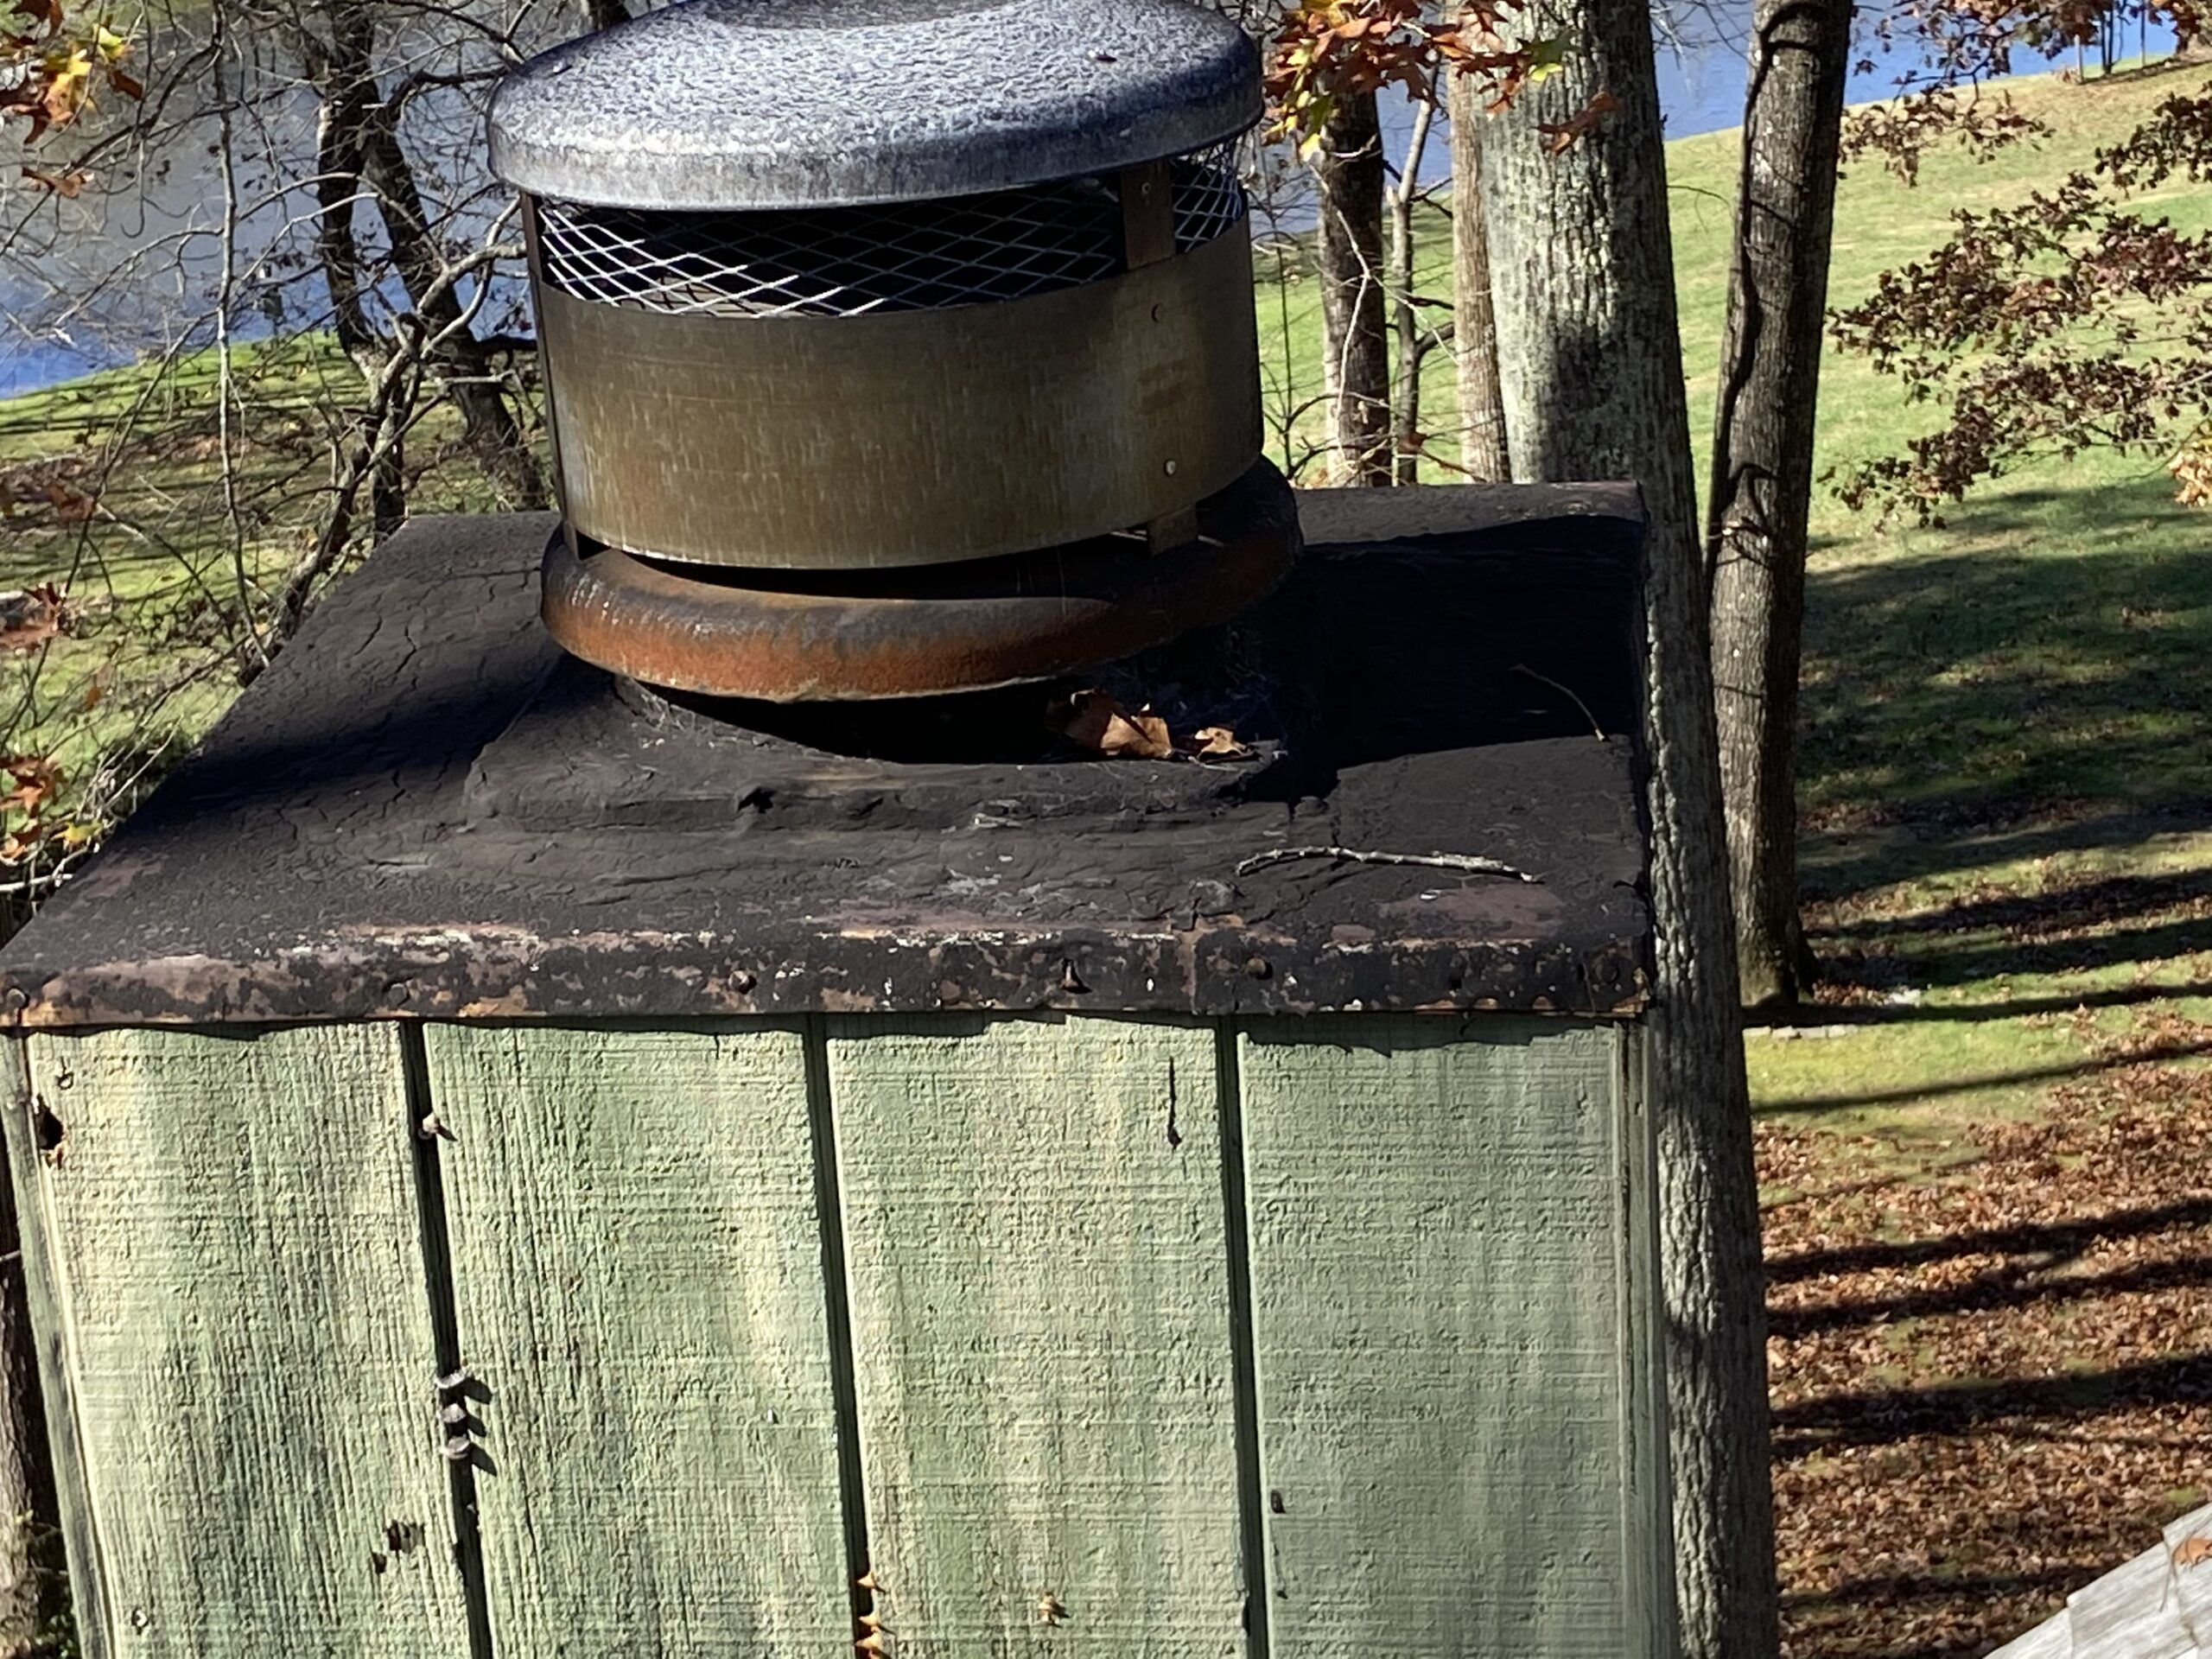 This is a picture of a chimney cap that has some tar on it